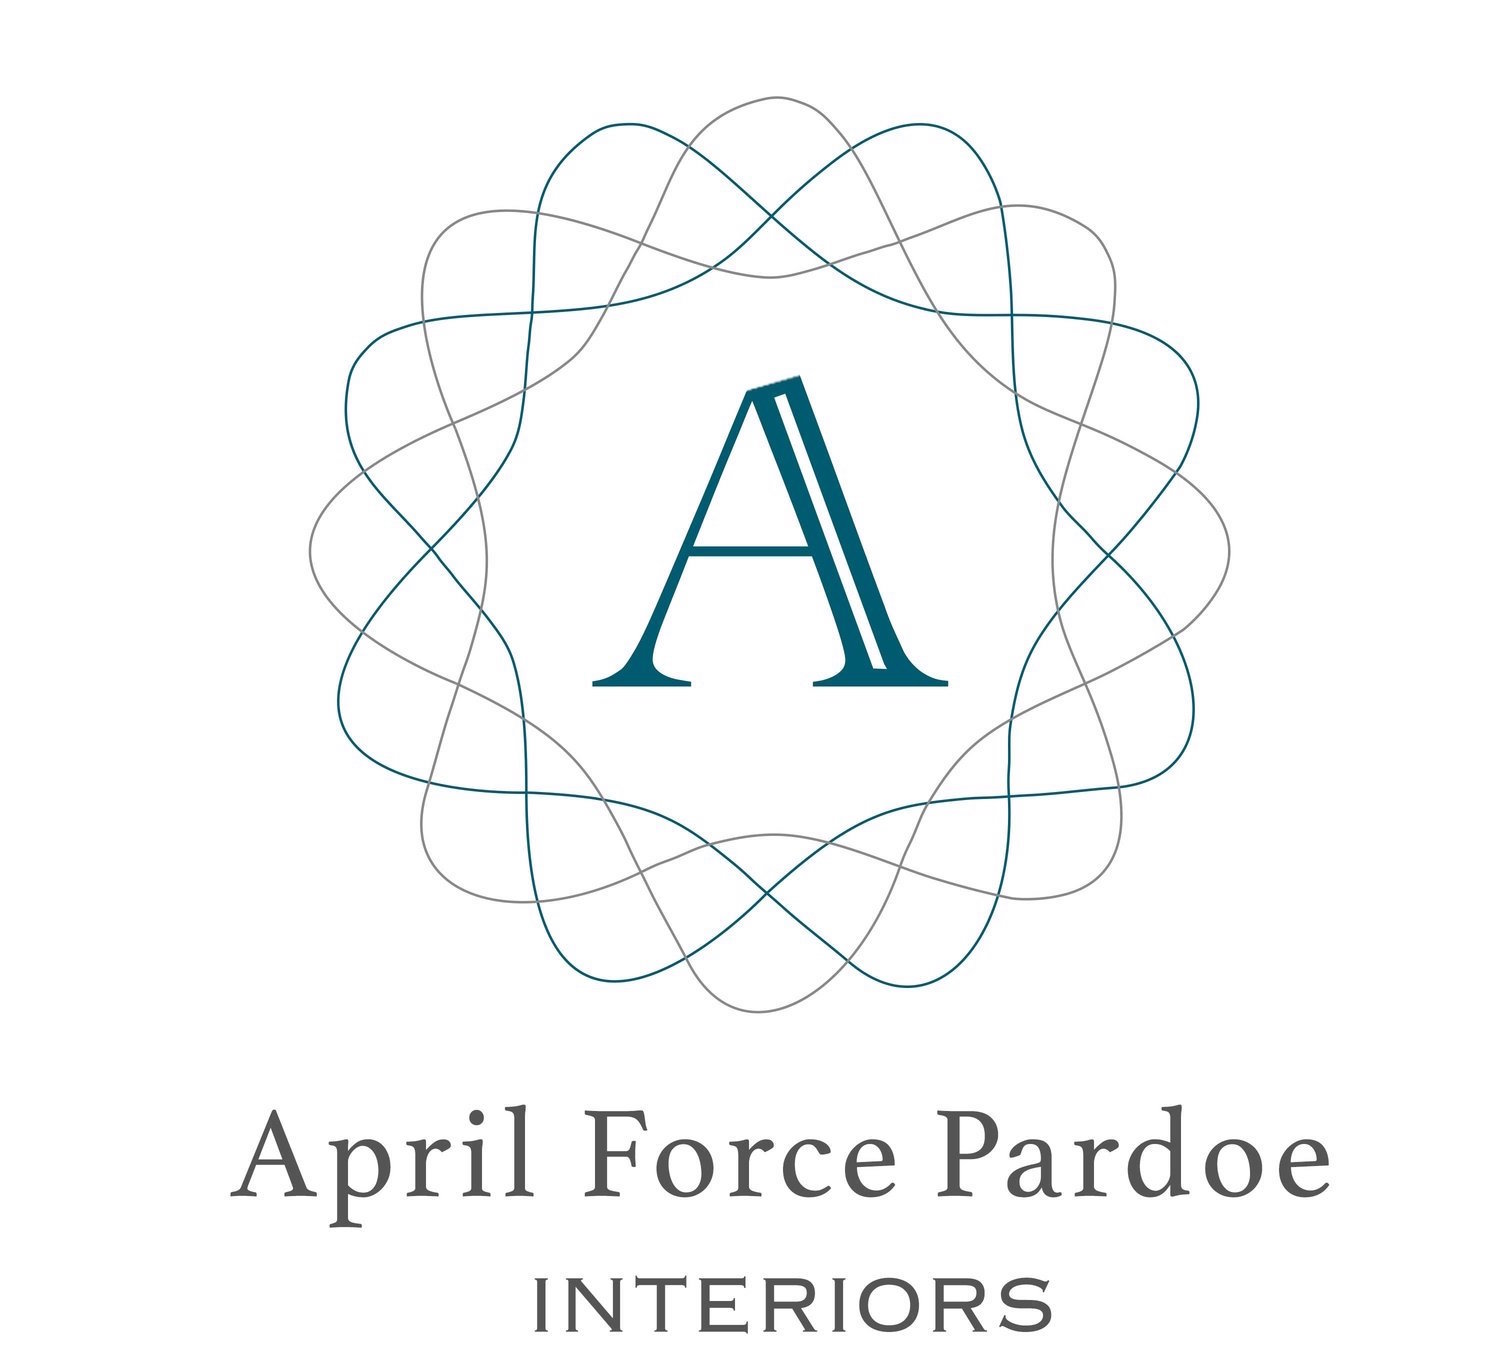 April Force Pardoe Interiors